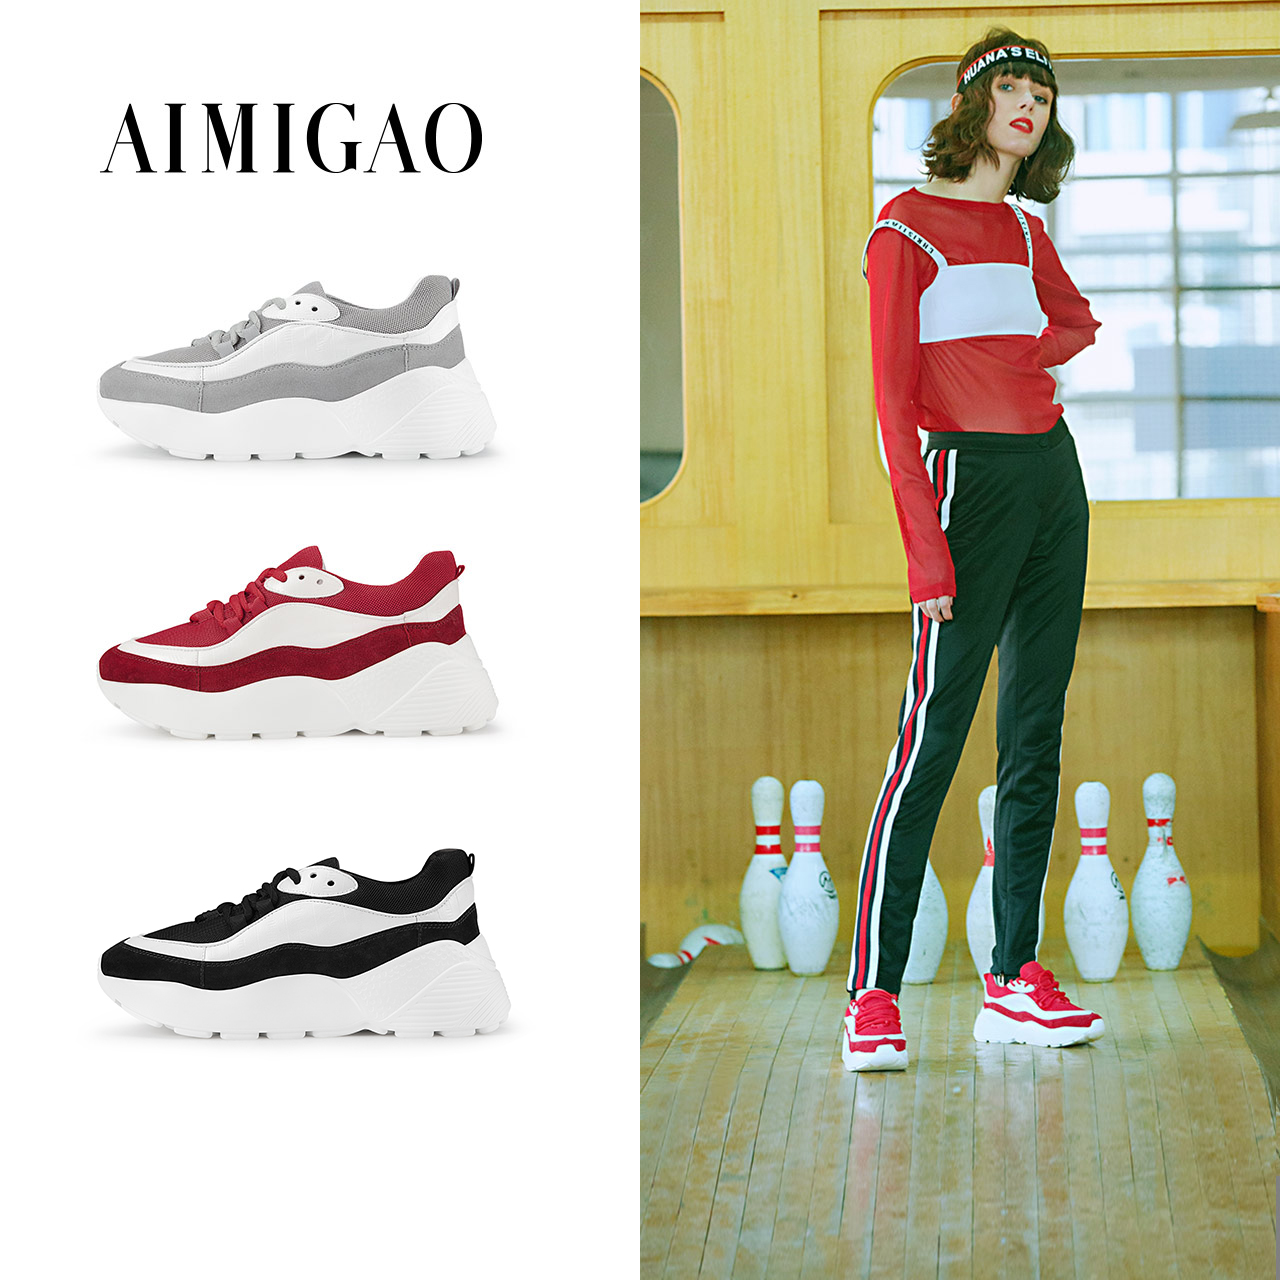 2018 Spring Round Toe Comfortable Thick Bottom Lace-Up Flat Platform Casual Women Shoes Mixed Color Fashion Sneakers Shoes Women vicamelia 2017 fashion women casual shoes grey appliques women flat shoes comfortable women sneakers female footwear 067